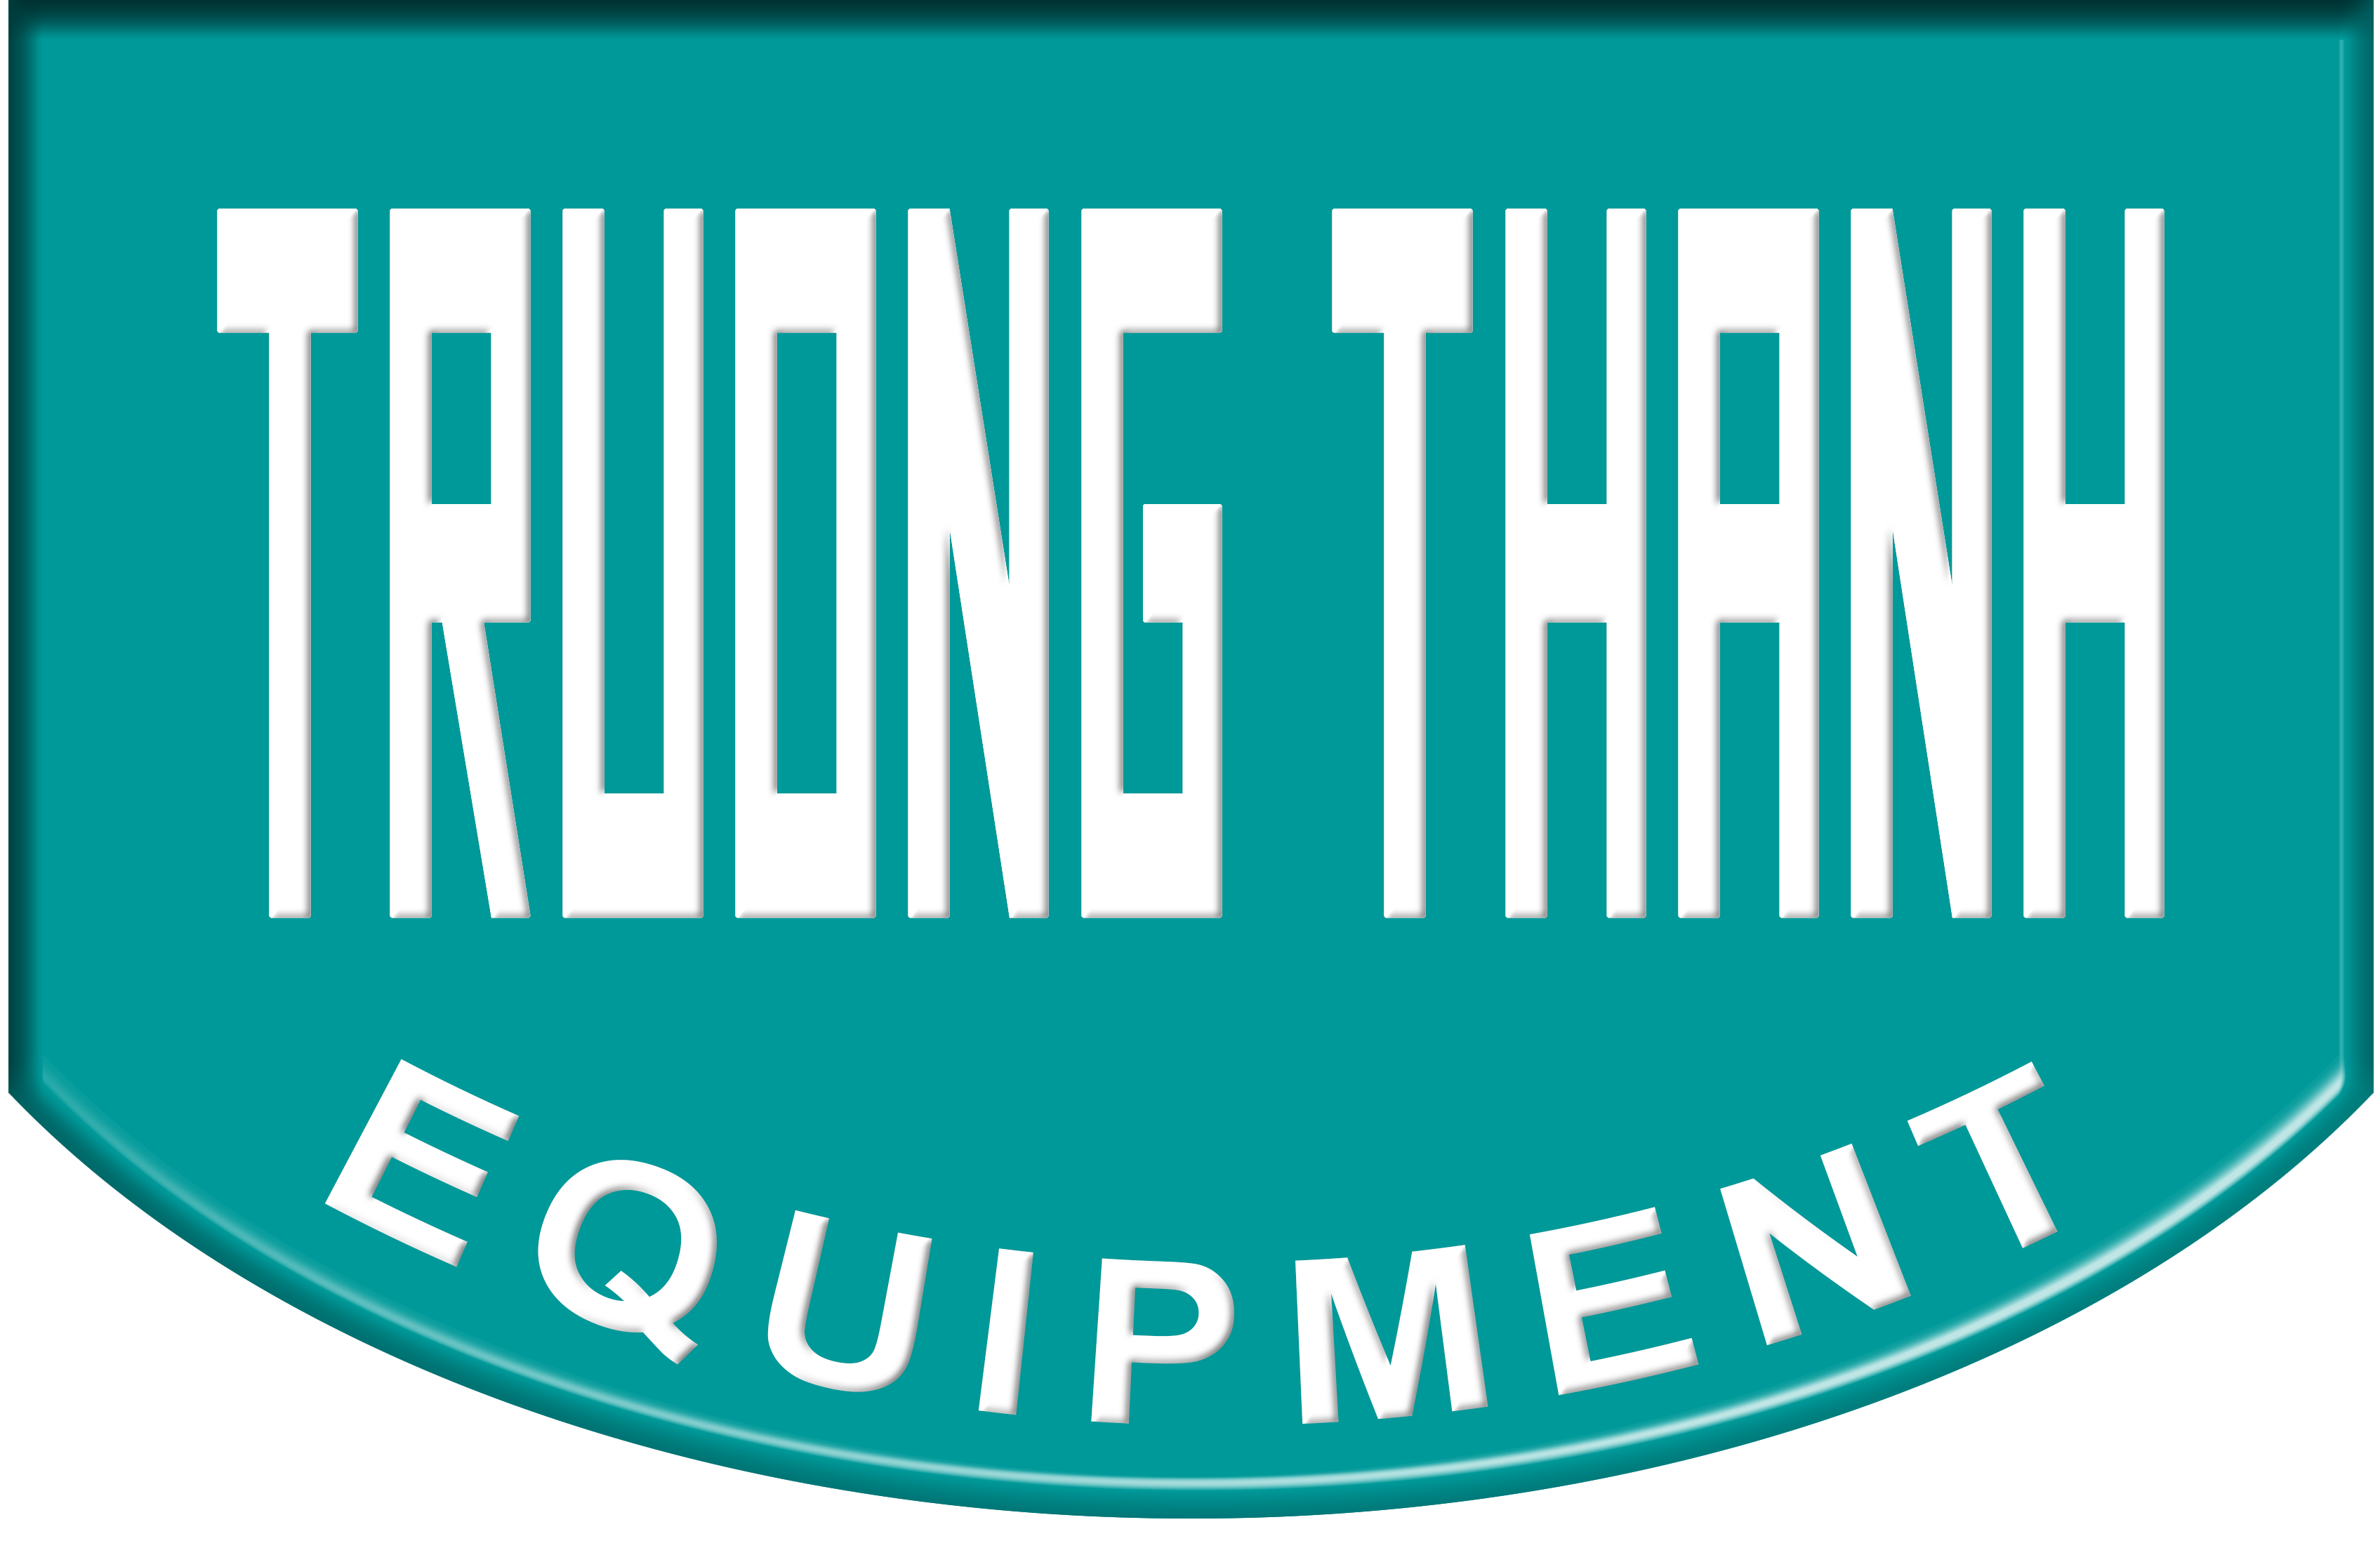 truong%20thanh%20equipment%20logo.png